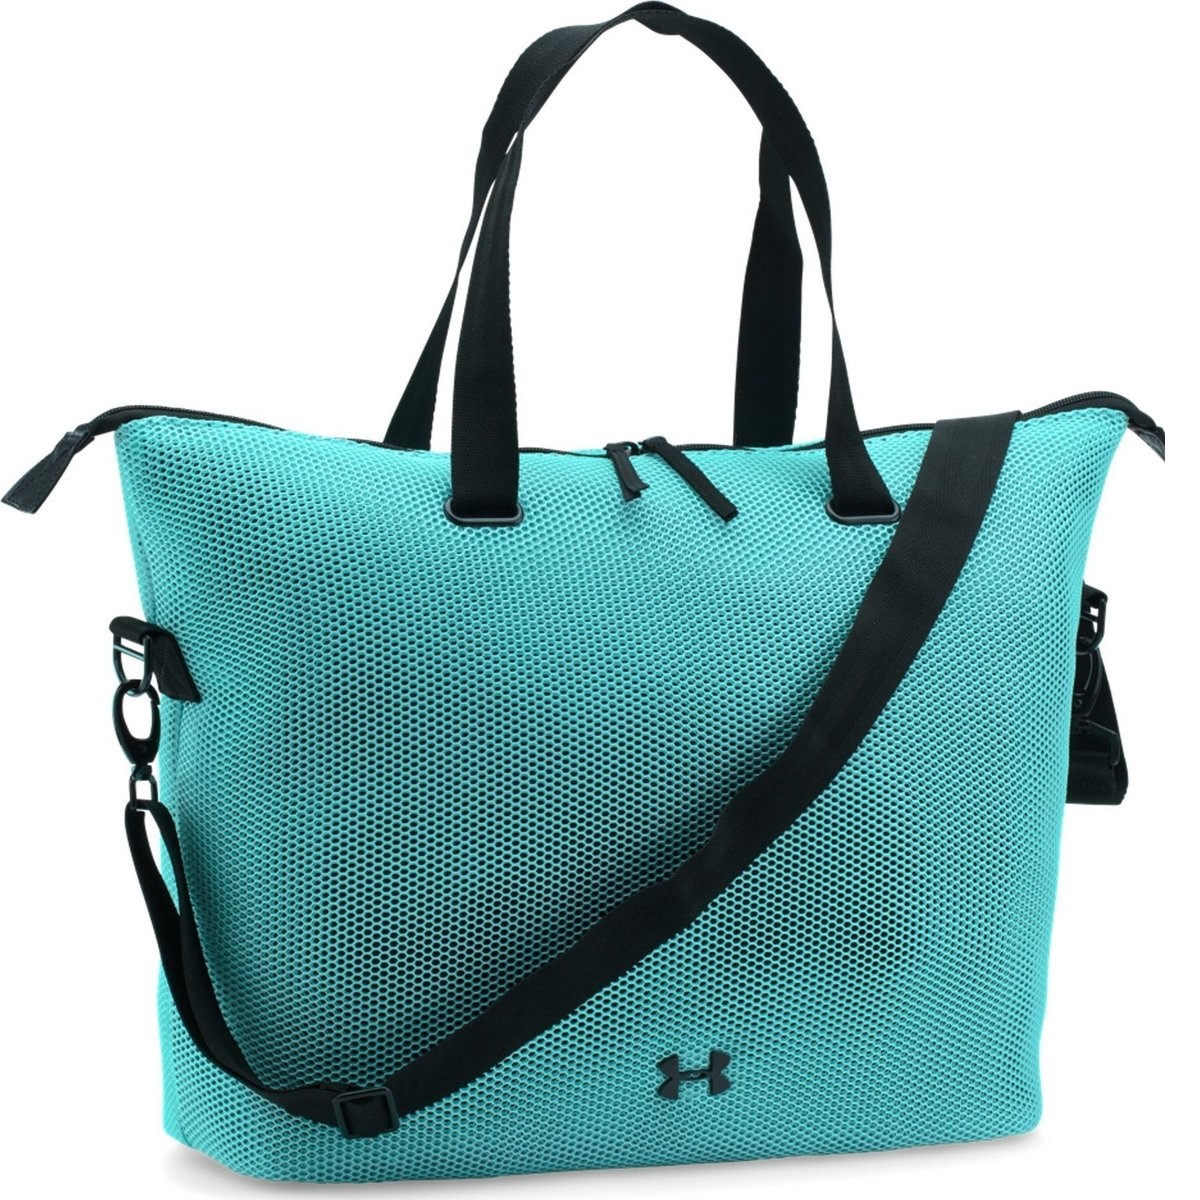 efafc80c5d8b Bags - under armour On The Run Tote Bag